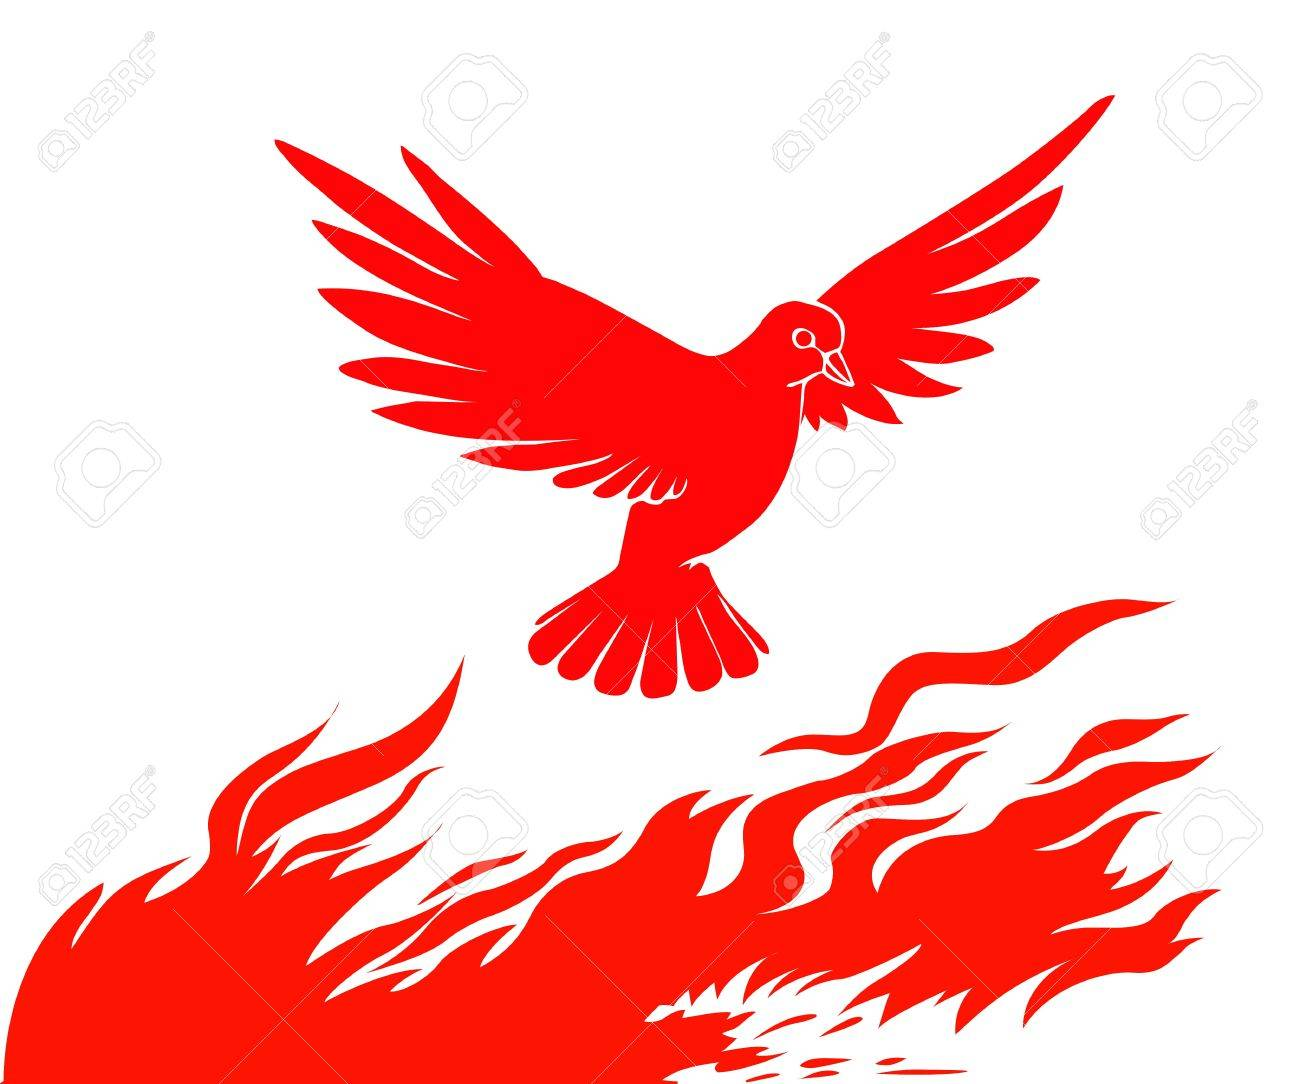 silhouette of the bird on fire on white background Stock Vector - 8768732